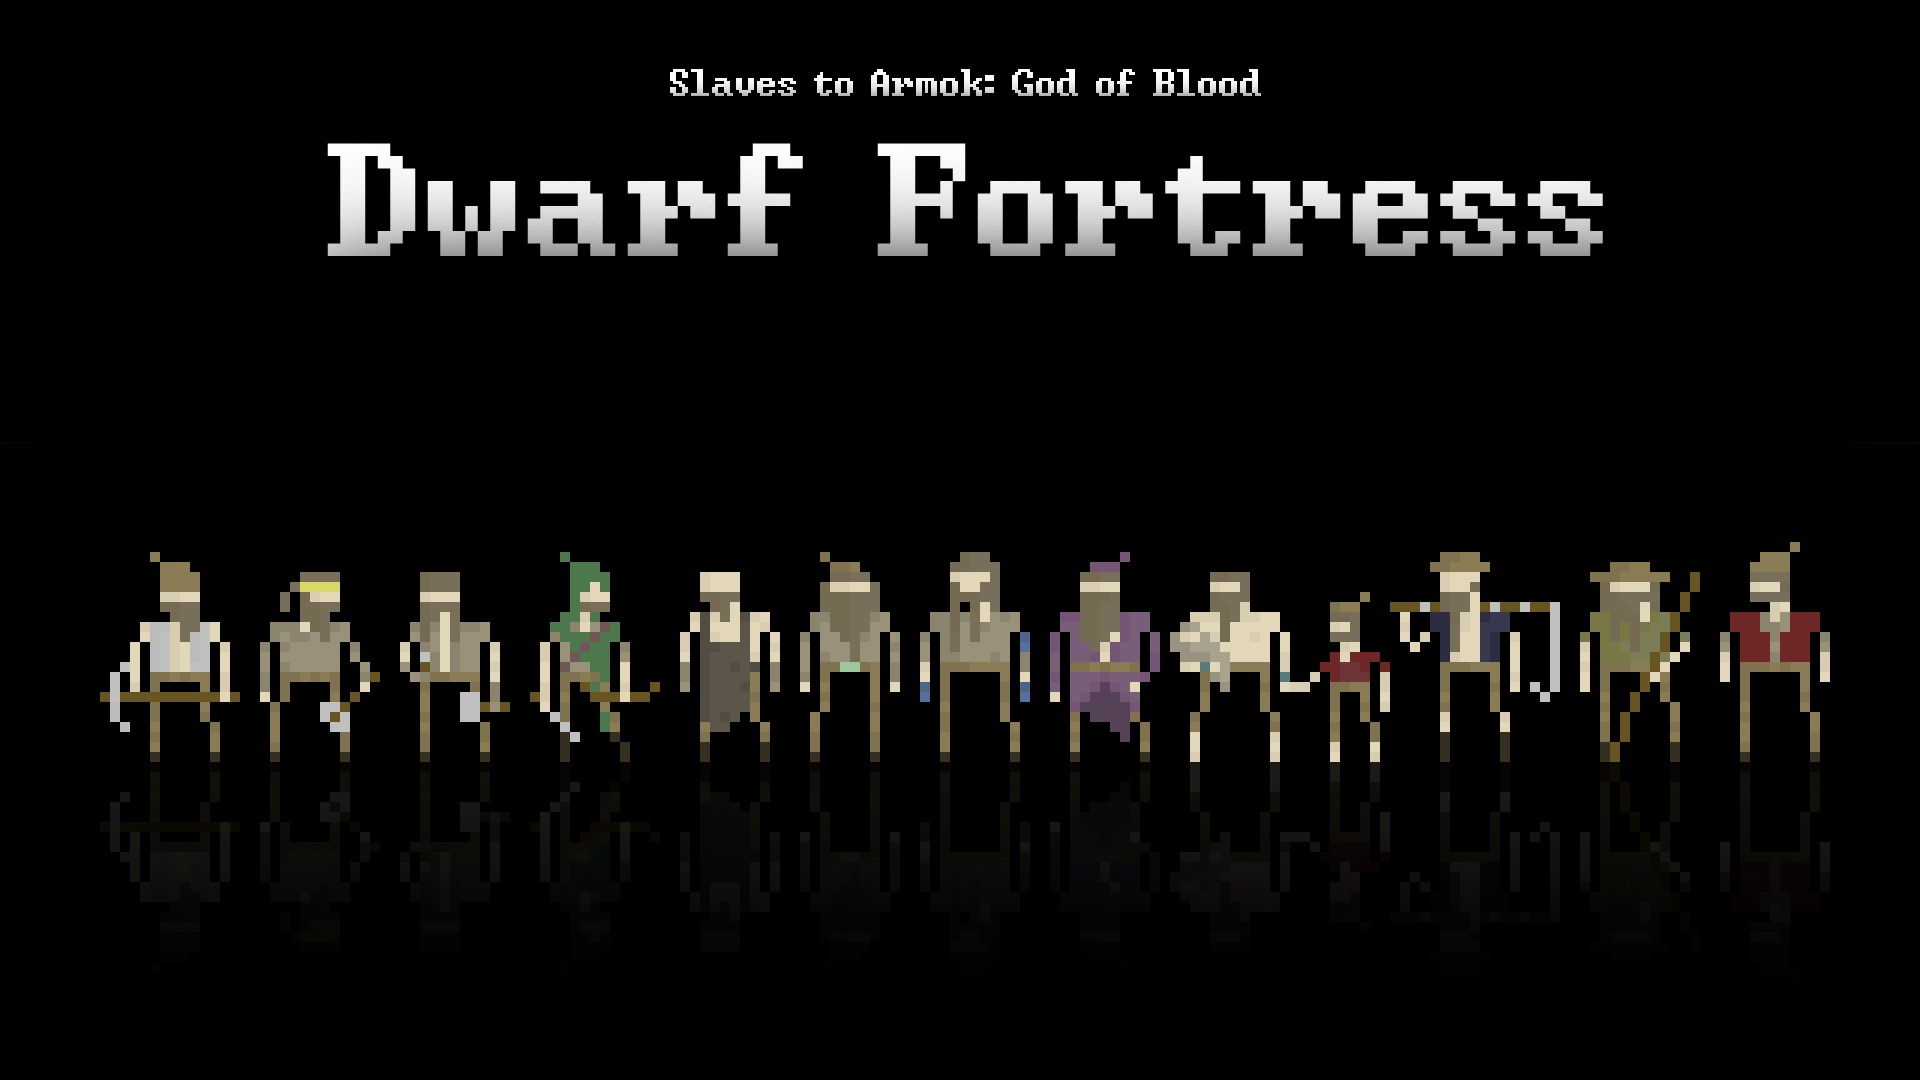 dwarf_fortress_lineout_by_izak1399-d54zrga